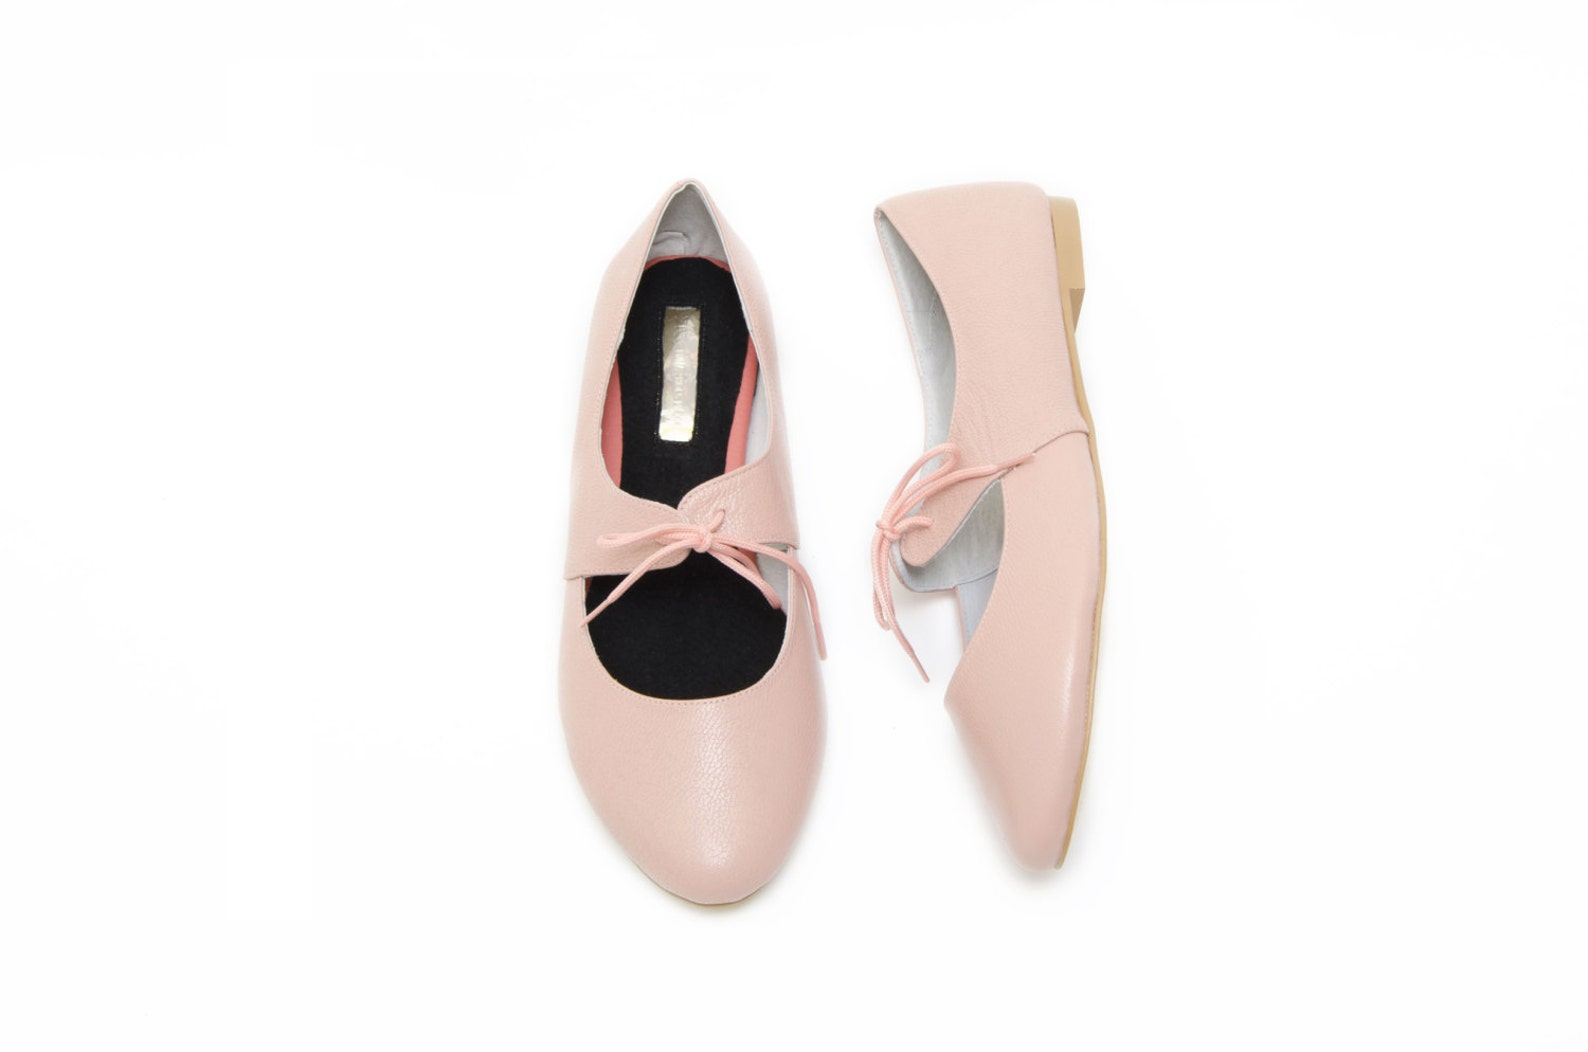 peach leather ballet flats - free shipping on these! - 100% genuine leather - limited edition - wide fit